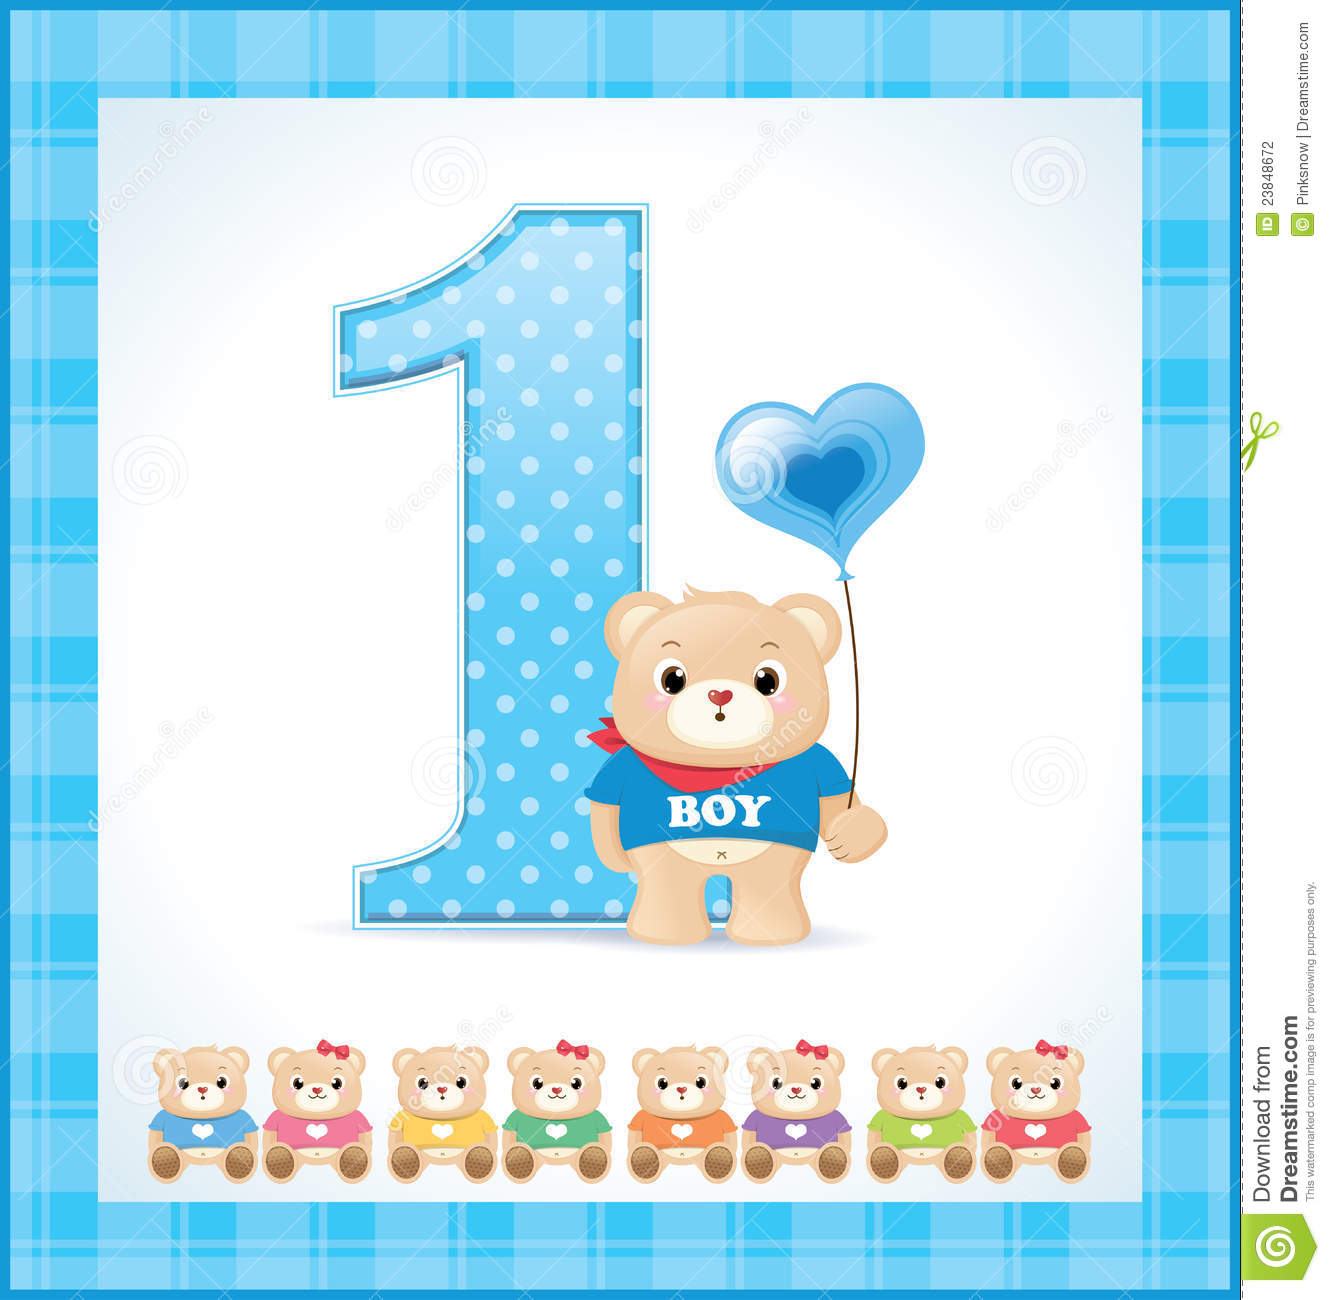 Feliz Cumple Mes Para Bebes Birthday Card For Baby Boy Stock Photography Image 23848672